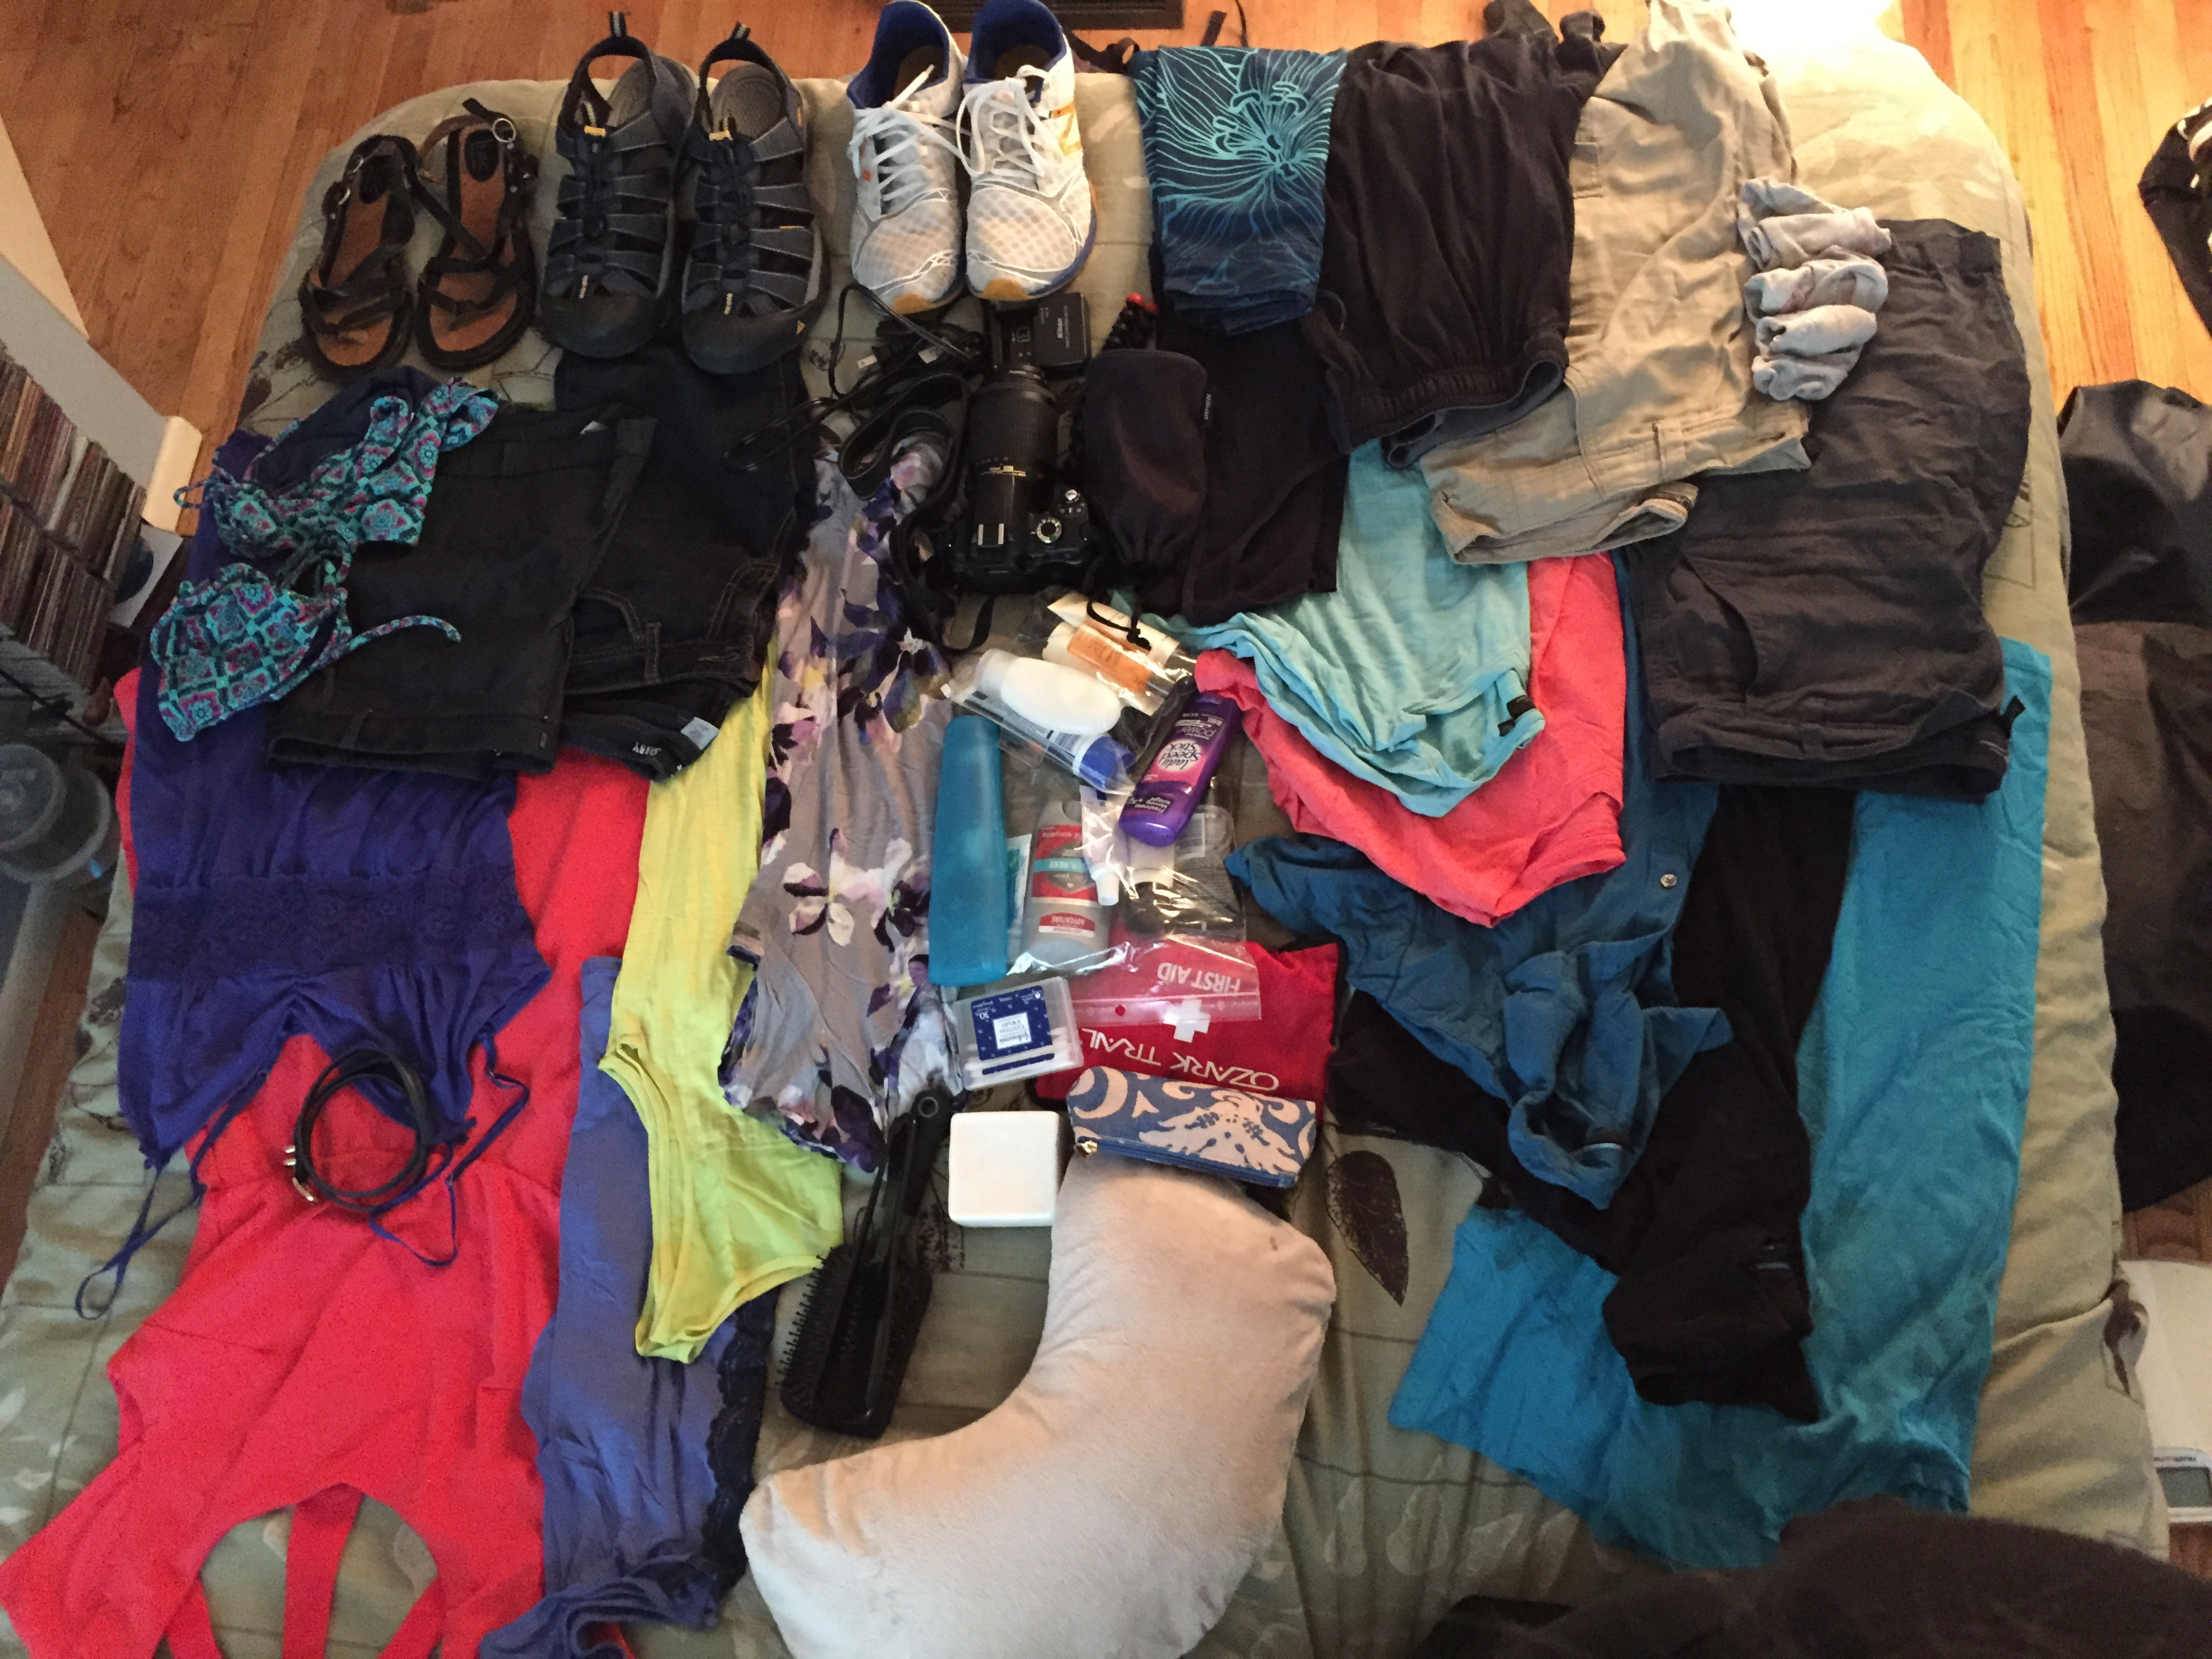 Clothes, shoes, and toiletries arranged on top of a bed.